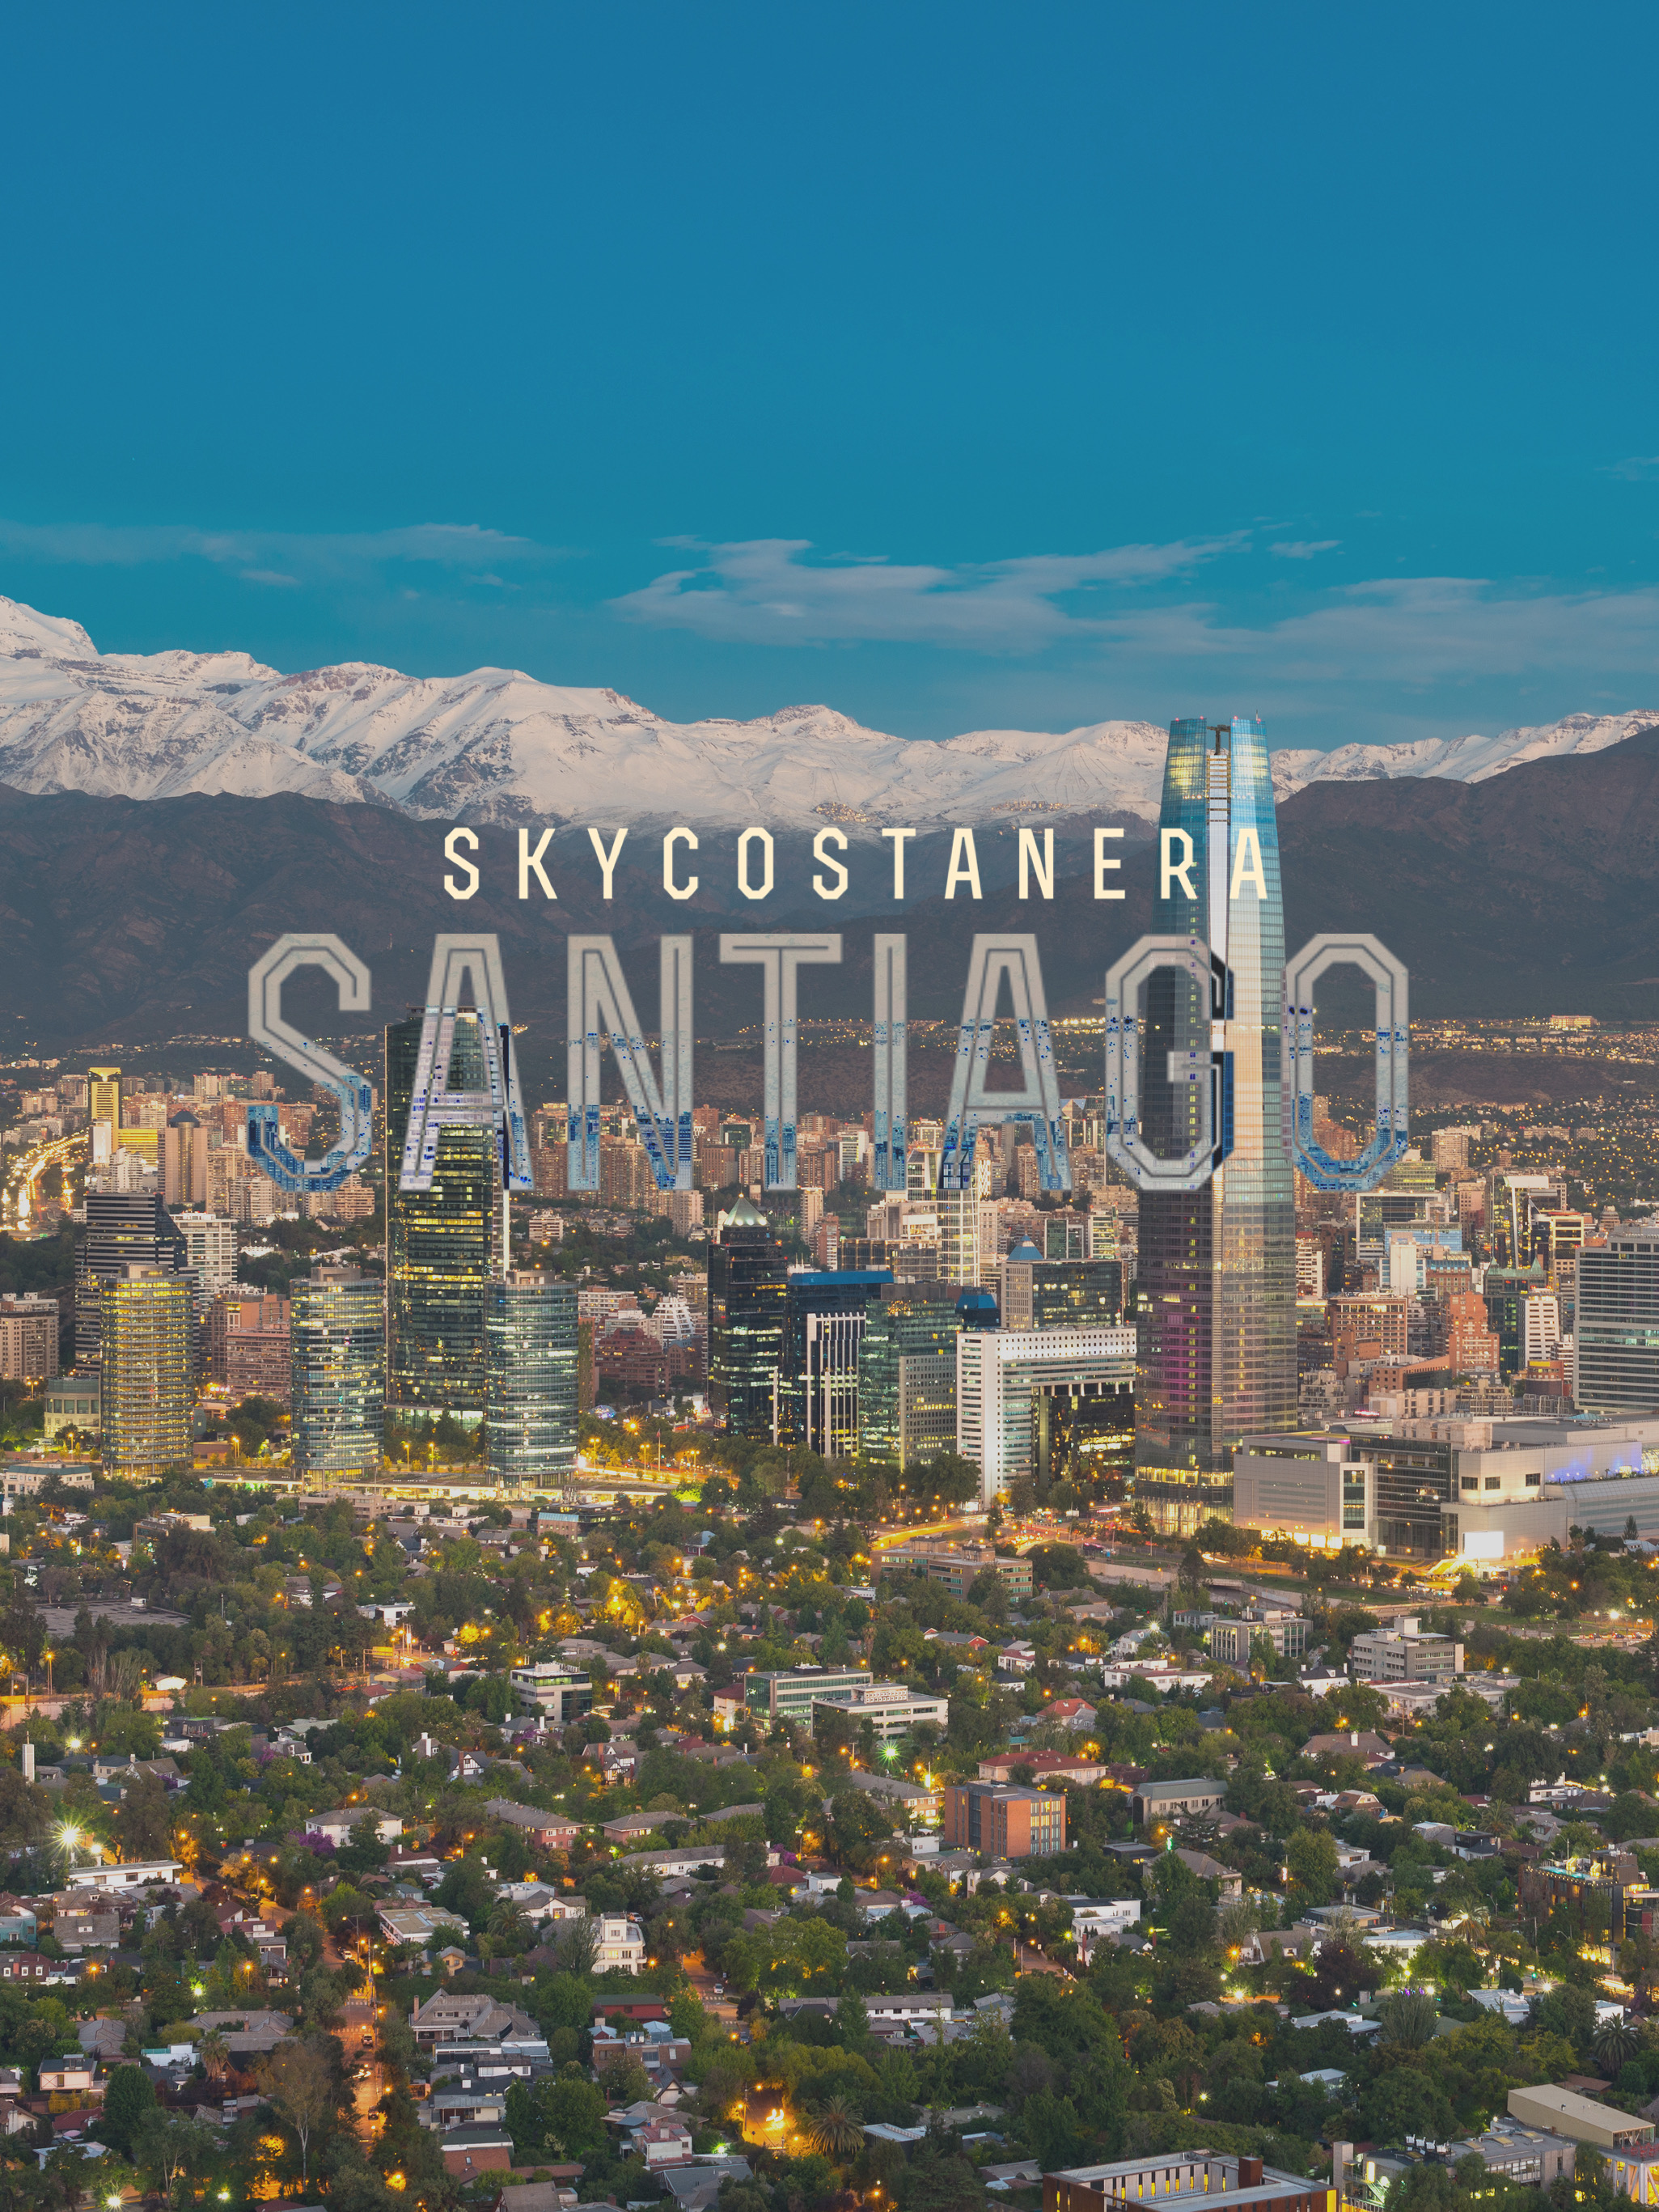 The View of Santiago